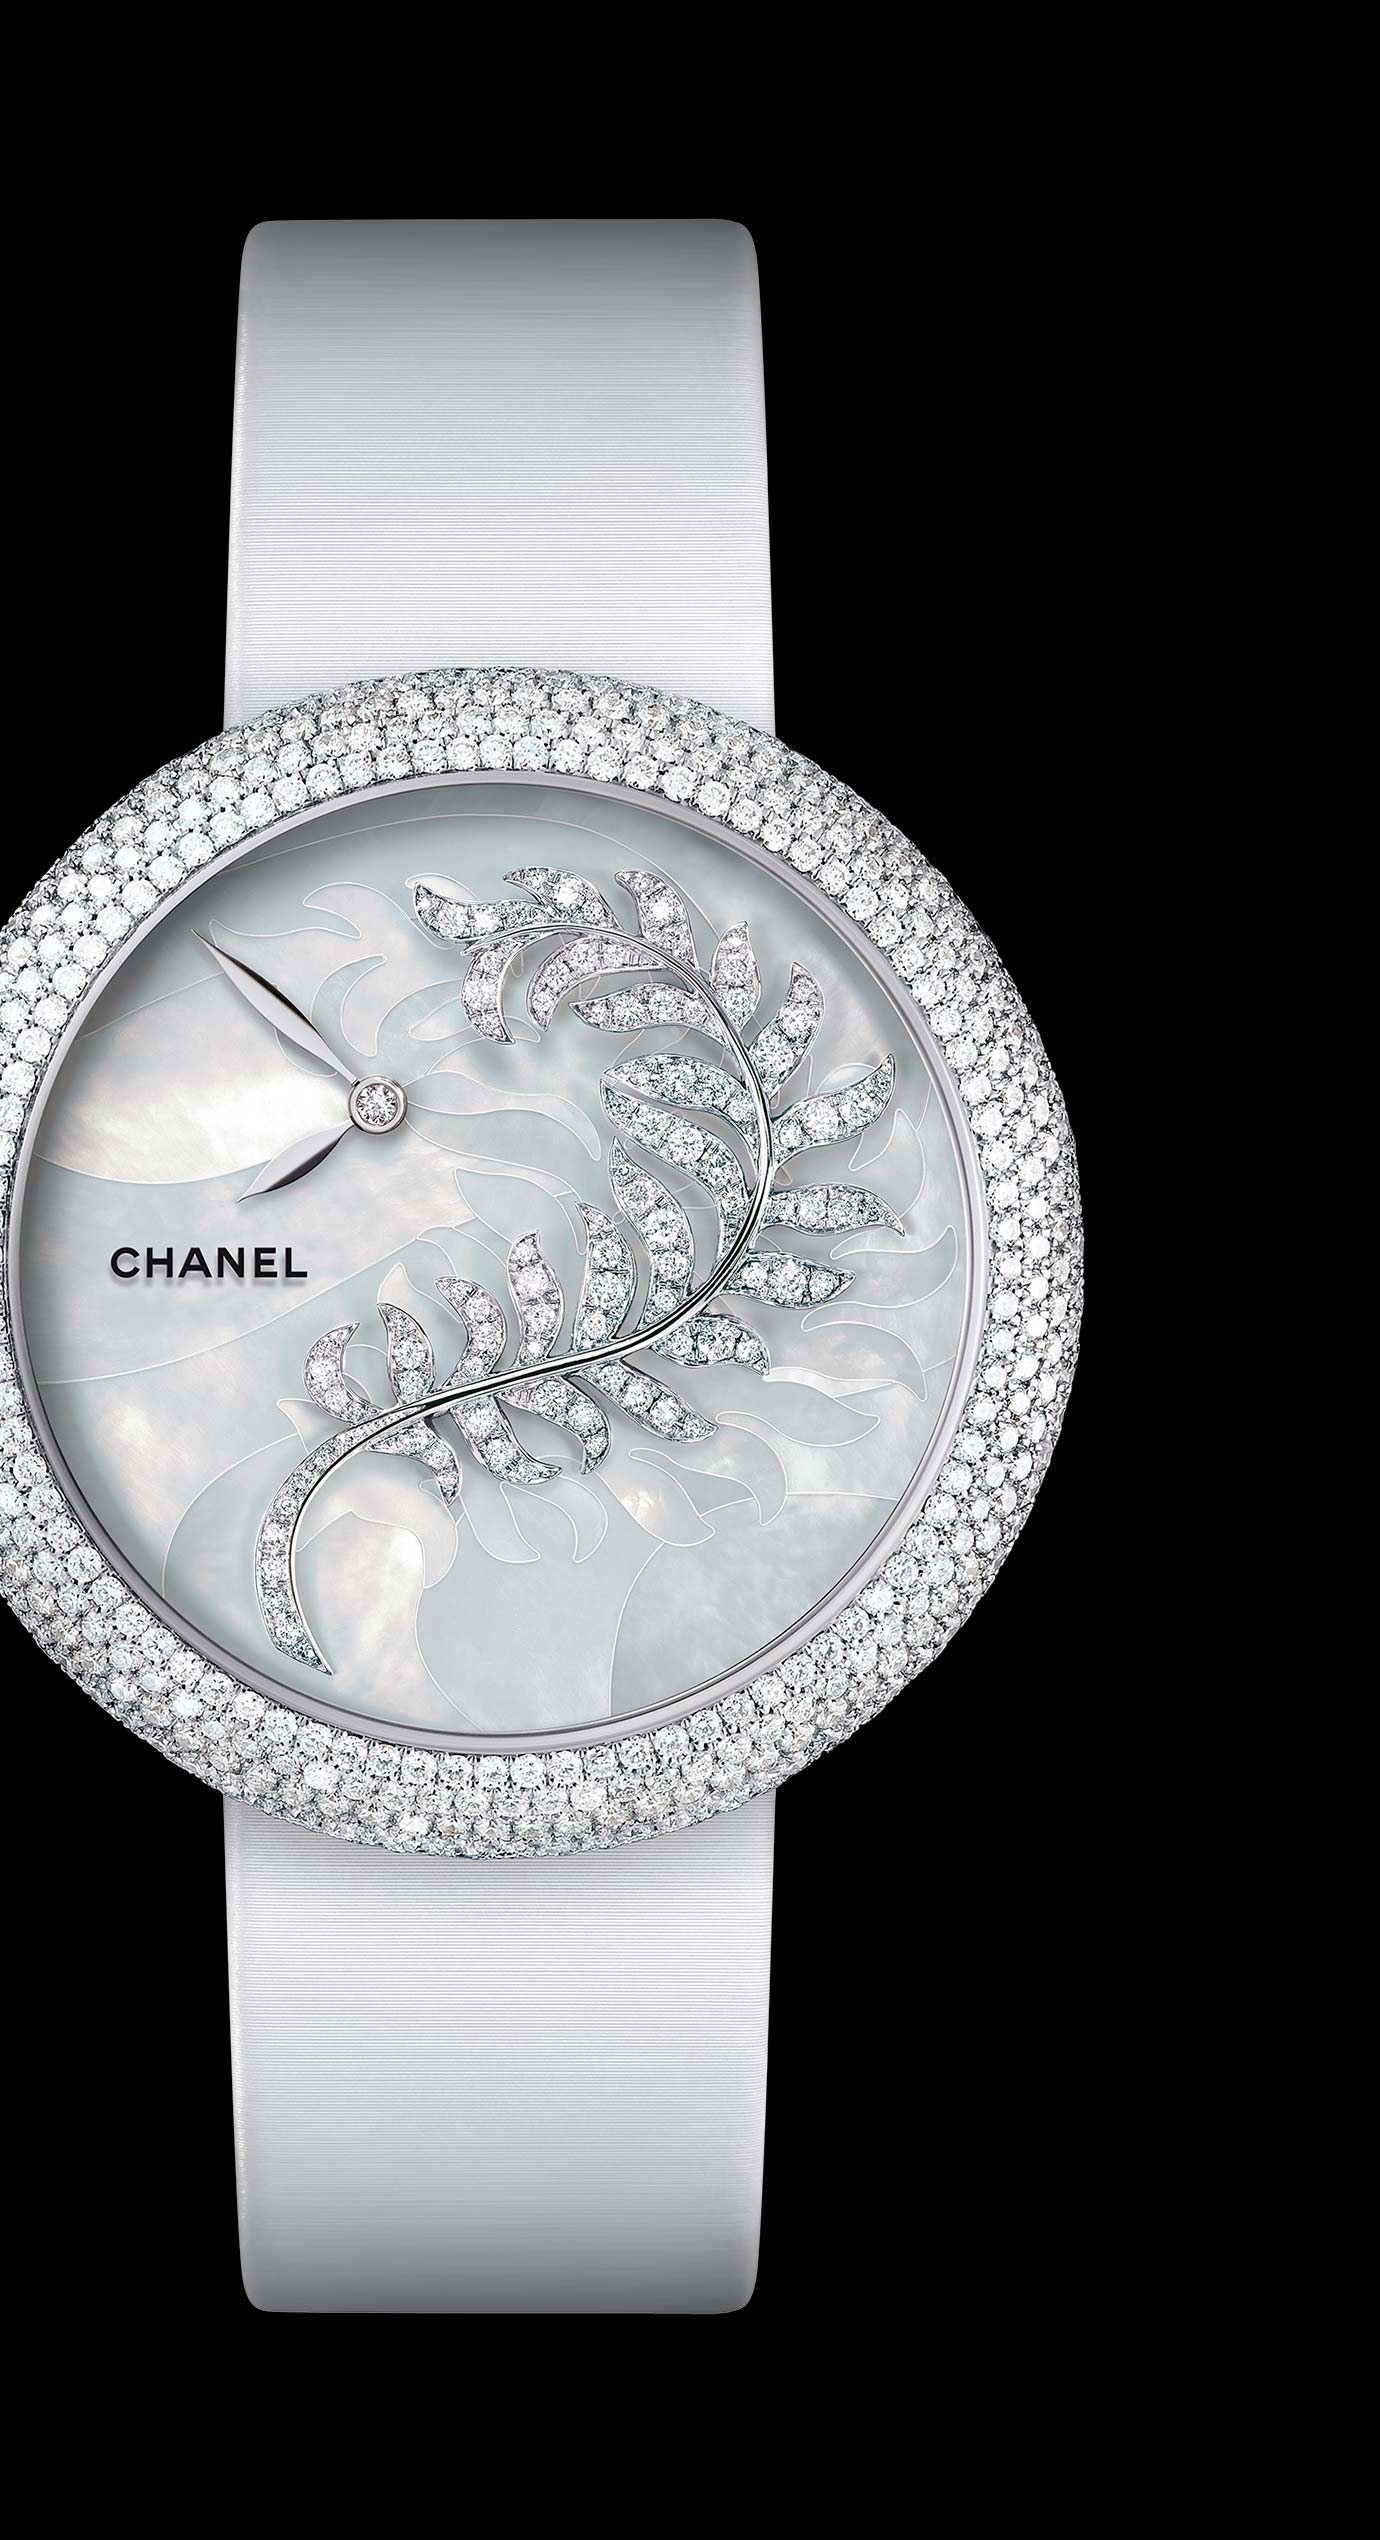 Mademoiselle Privé Bijoux de Diamants Plume Jewelry watch - mother-of-pearl marquetry and diamonds. - Enlarged view